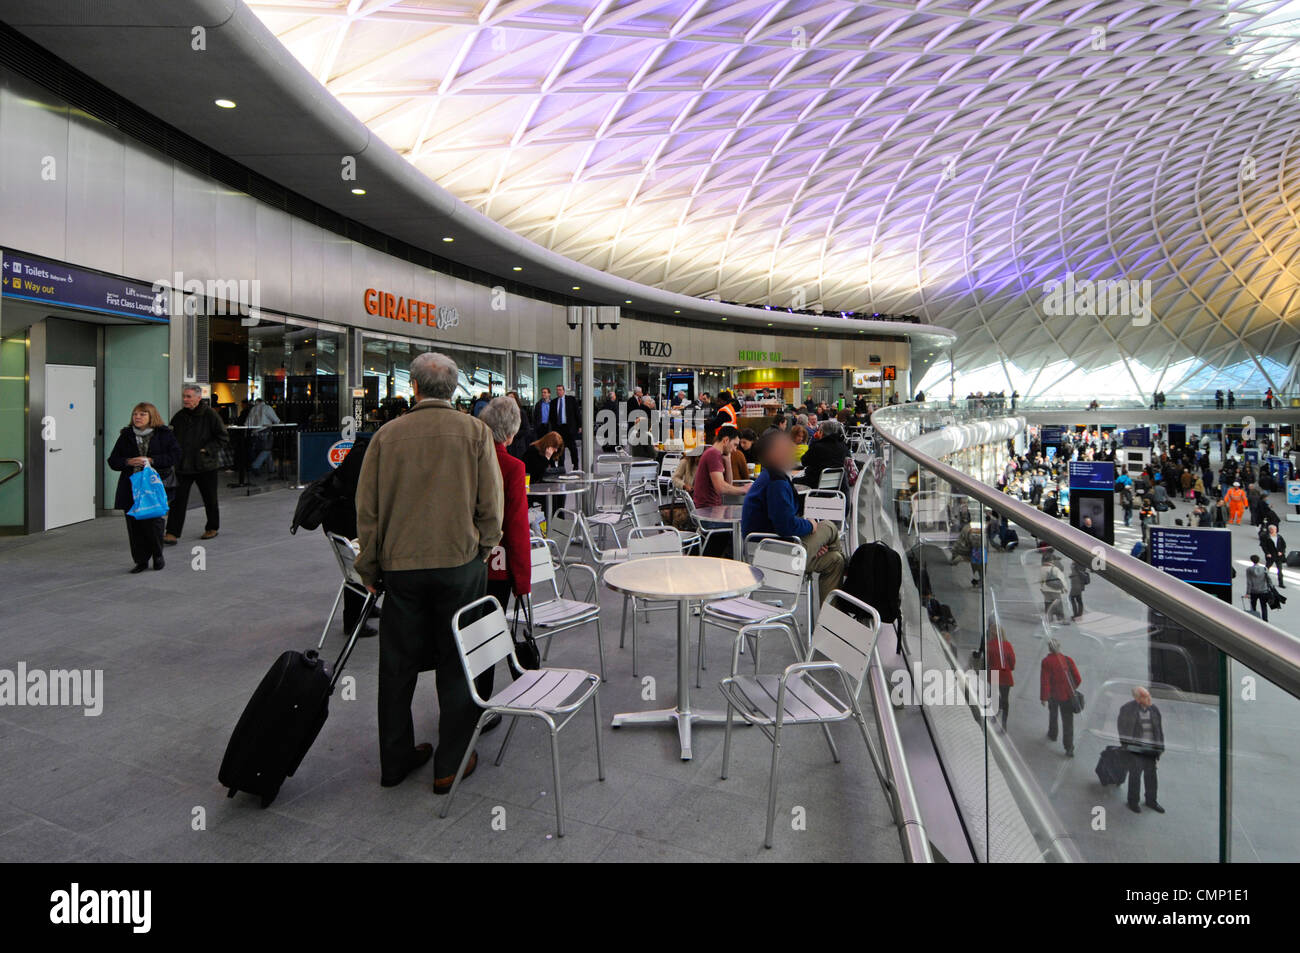 Kings Cross Railway Station cafe and eating facilities on mezzanine floor above main departure concourse - Stock Image